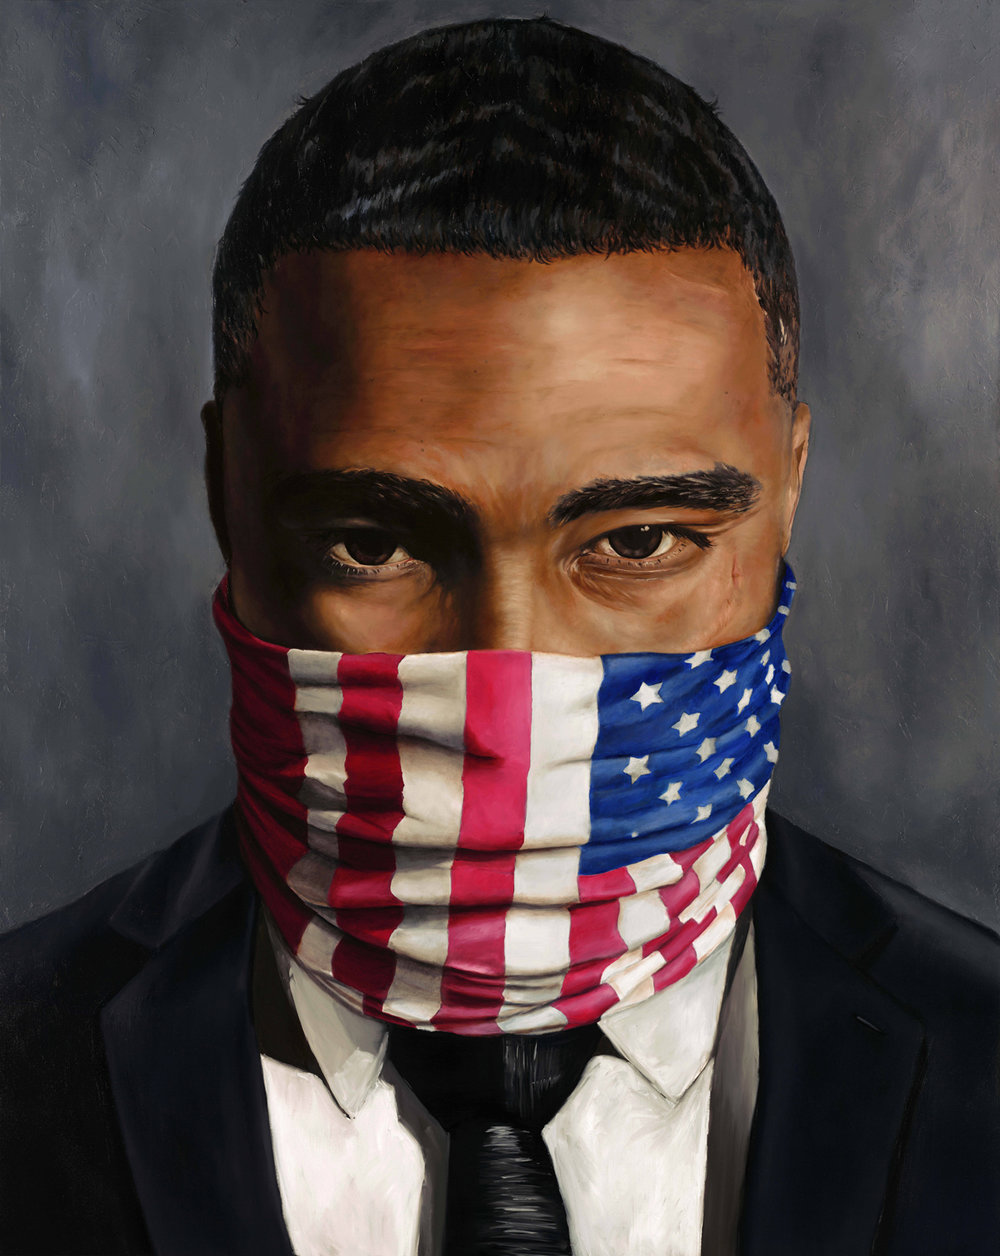 O'Neil Scott, Citizen, 2016 Oil on canvas 48x60""